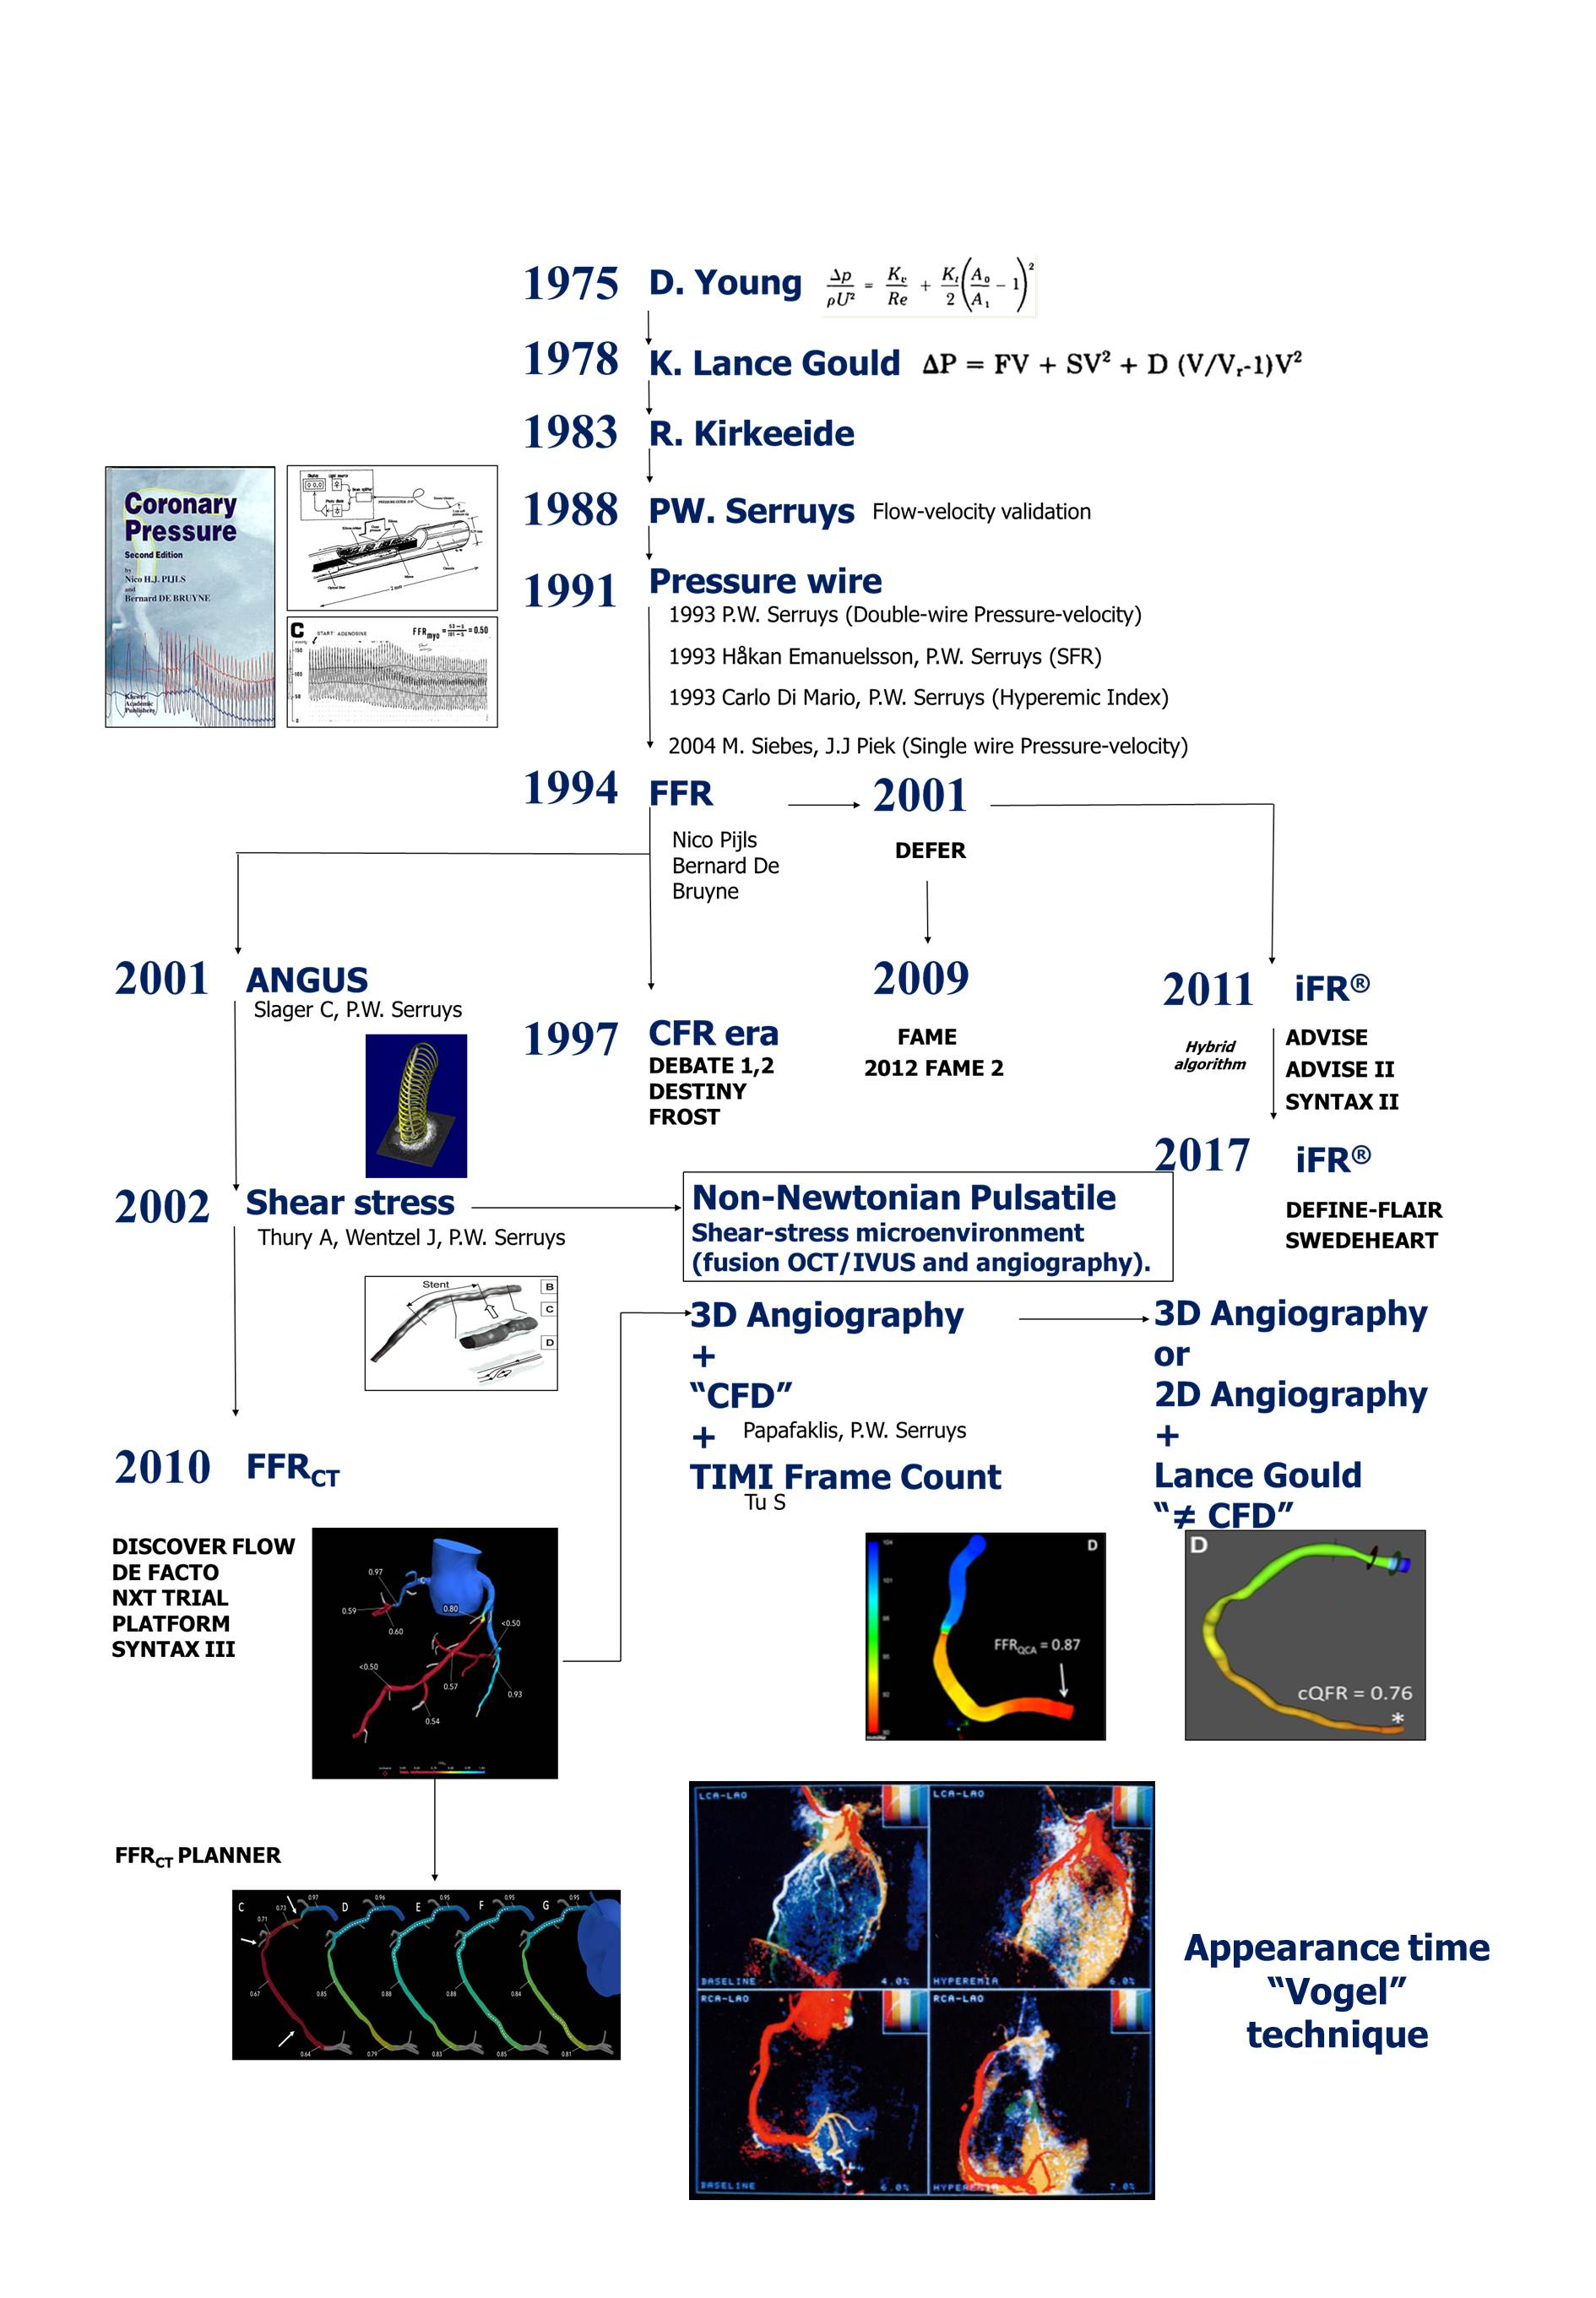 A newborn journal of interventional cardiology  Where are we